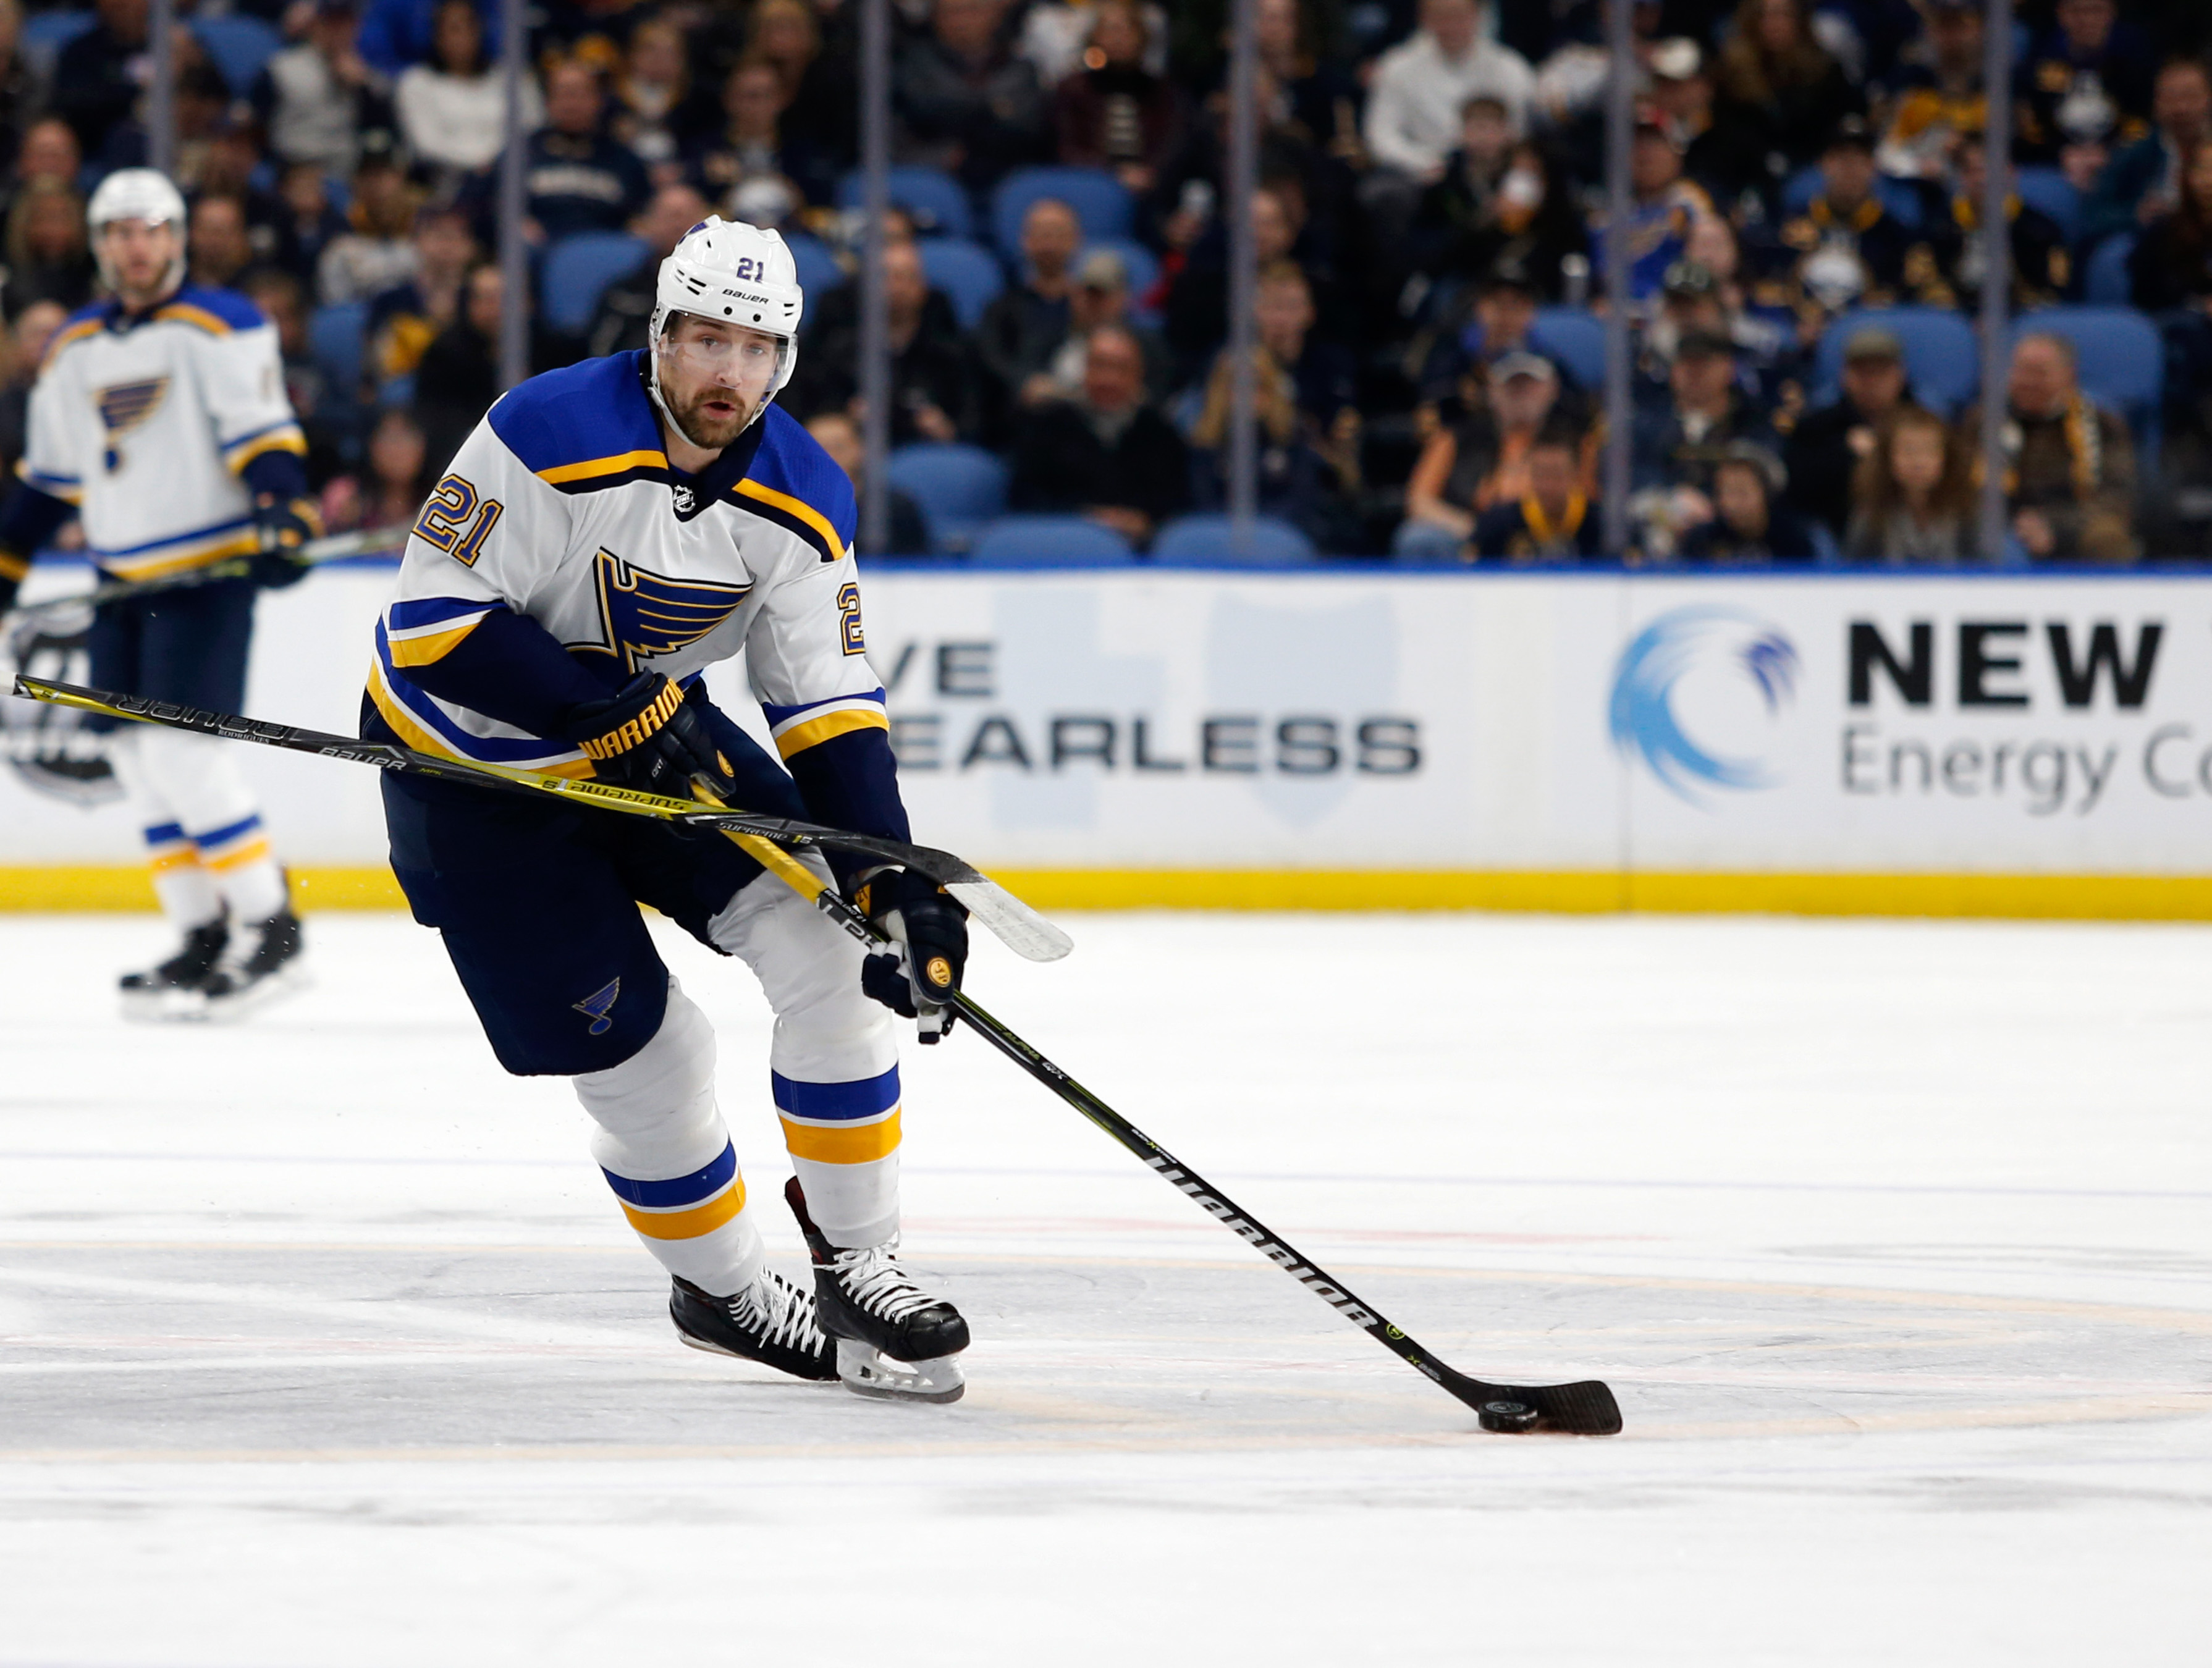 Leaving St. Louis Led To Patrik Berglund Losing Passion For Hockey - St. Louis Game Time